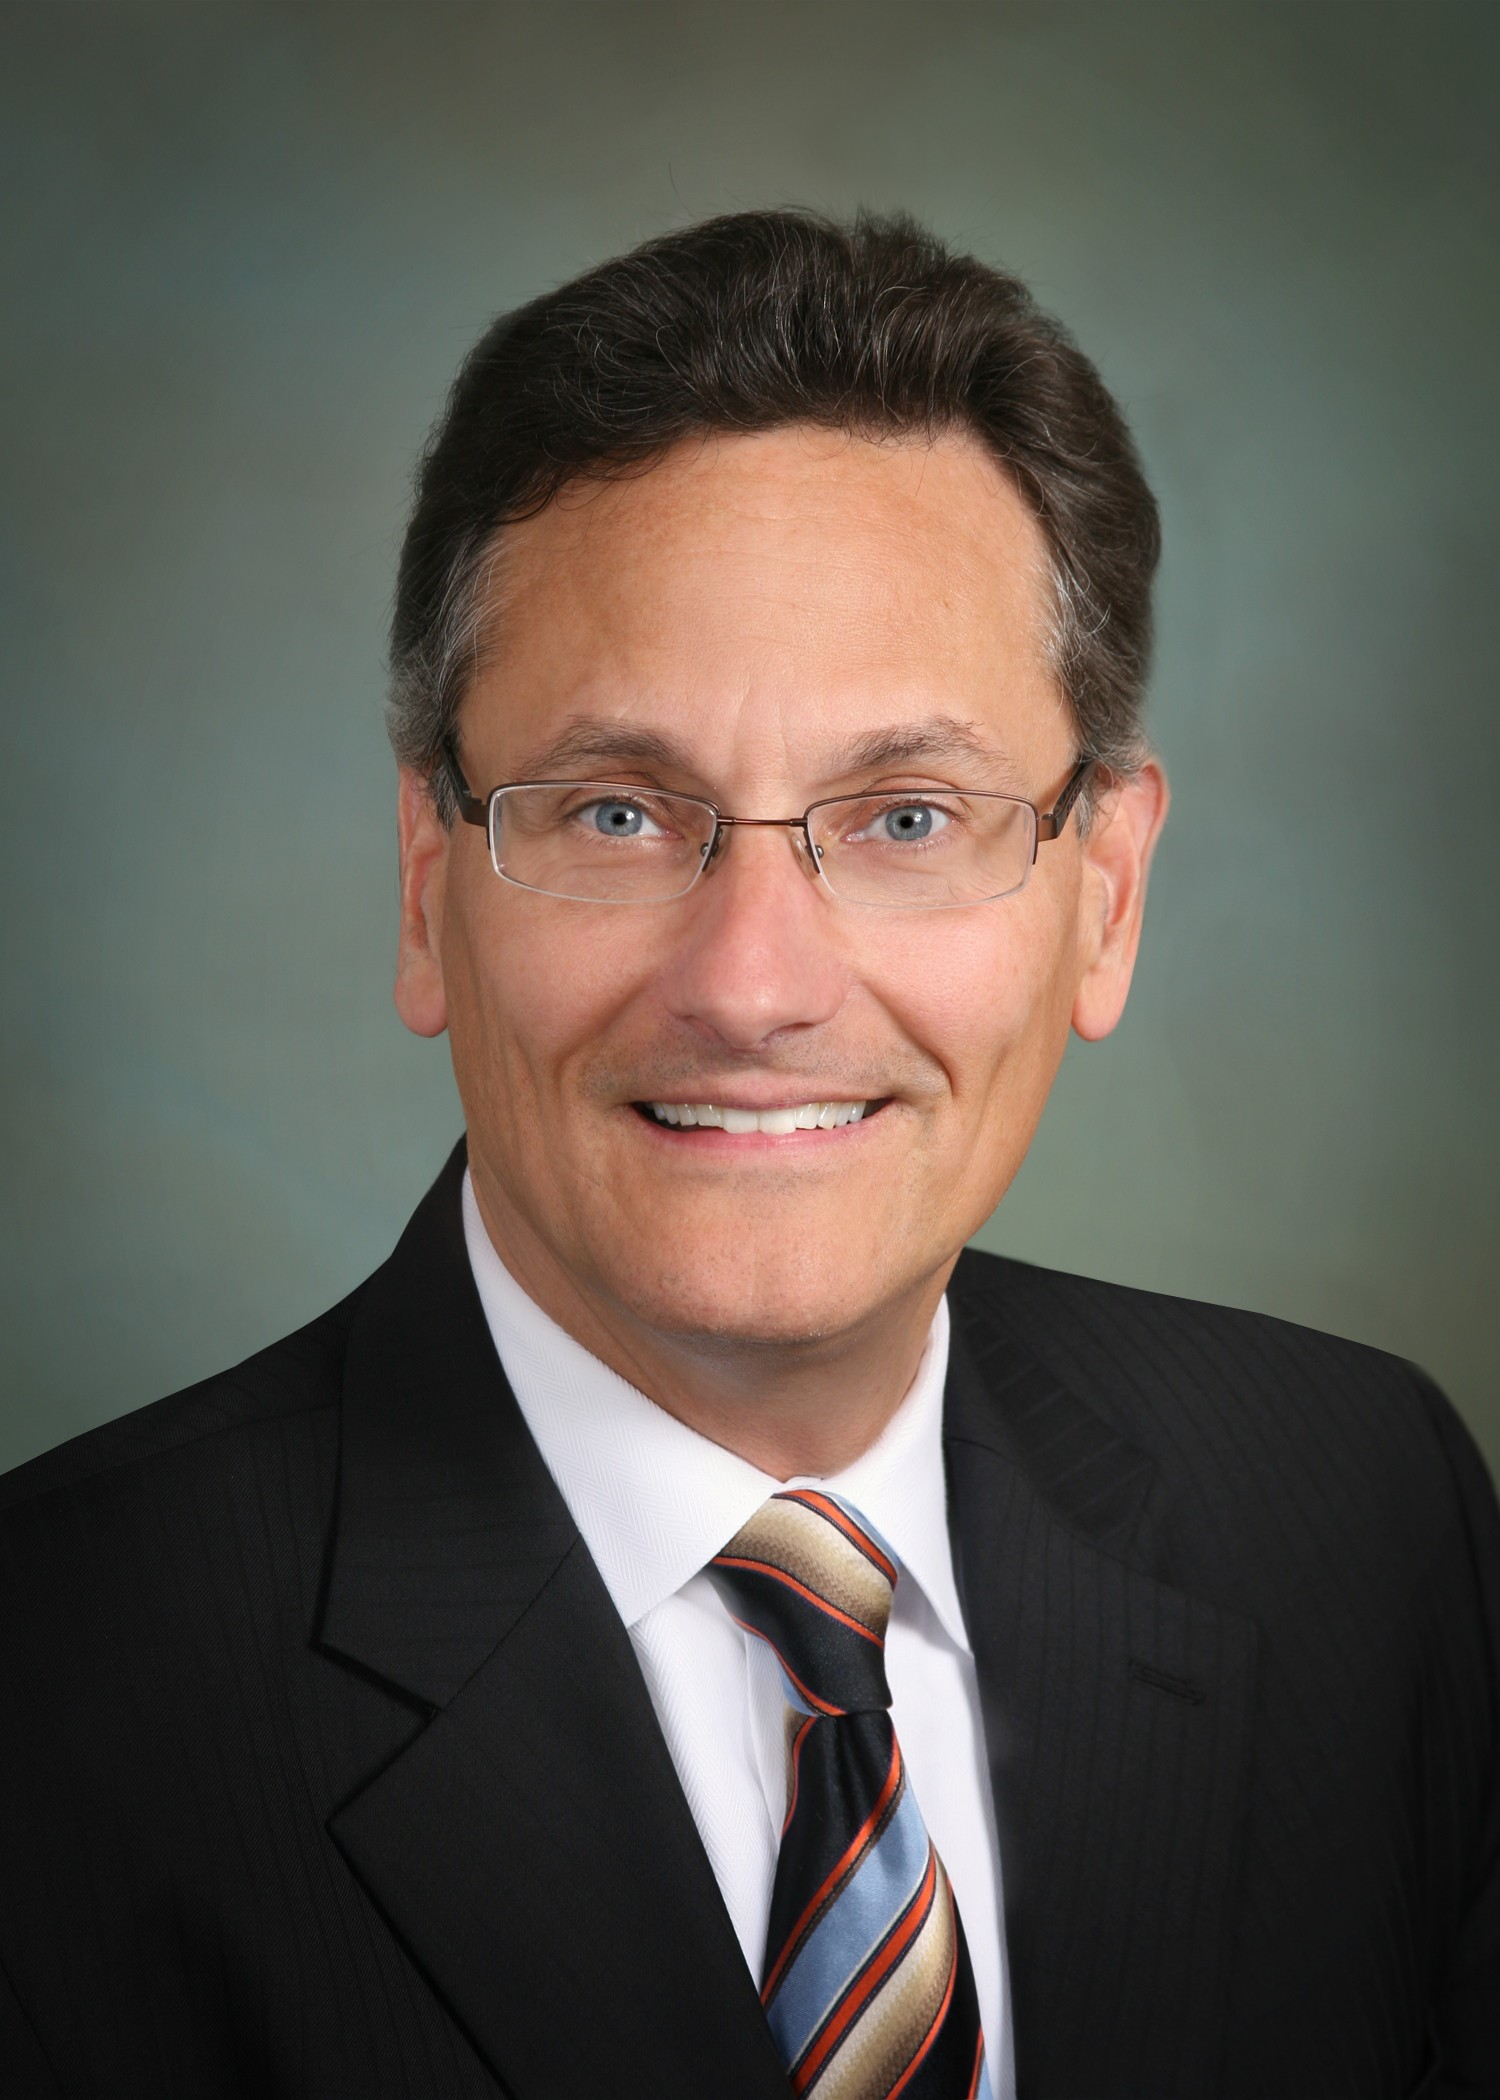 Kent State University alumnus David Brandt of Lockheed Martin is the Commencement speaker for the afternoon ceremony on Dec. 16 at his alma mater.